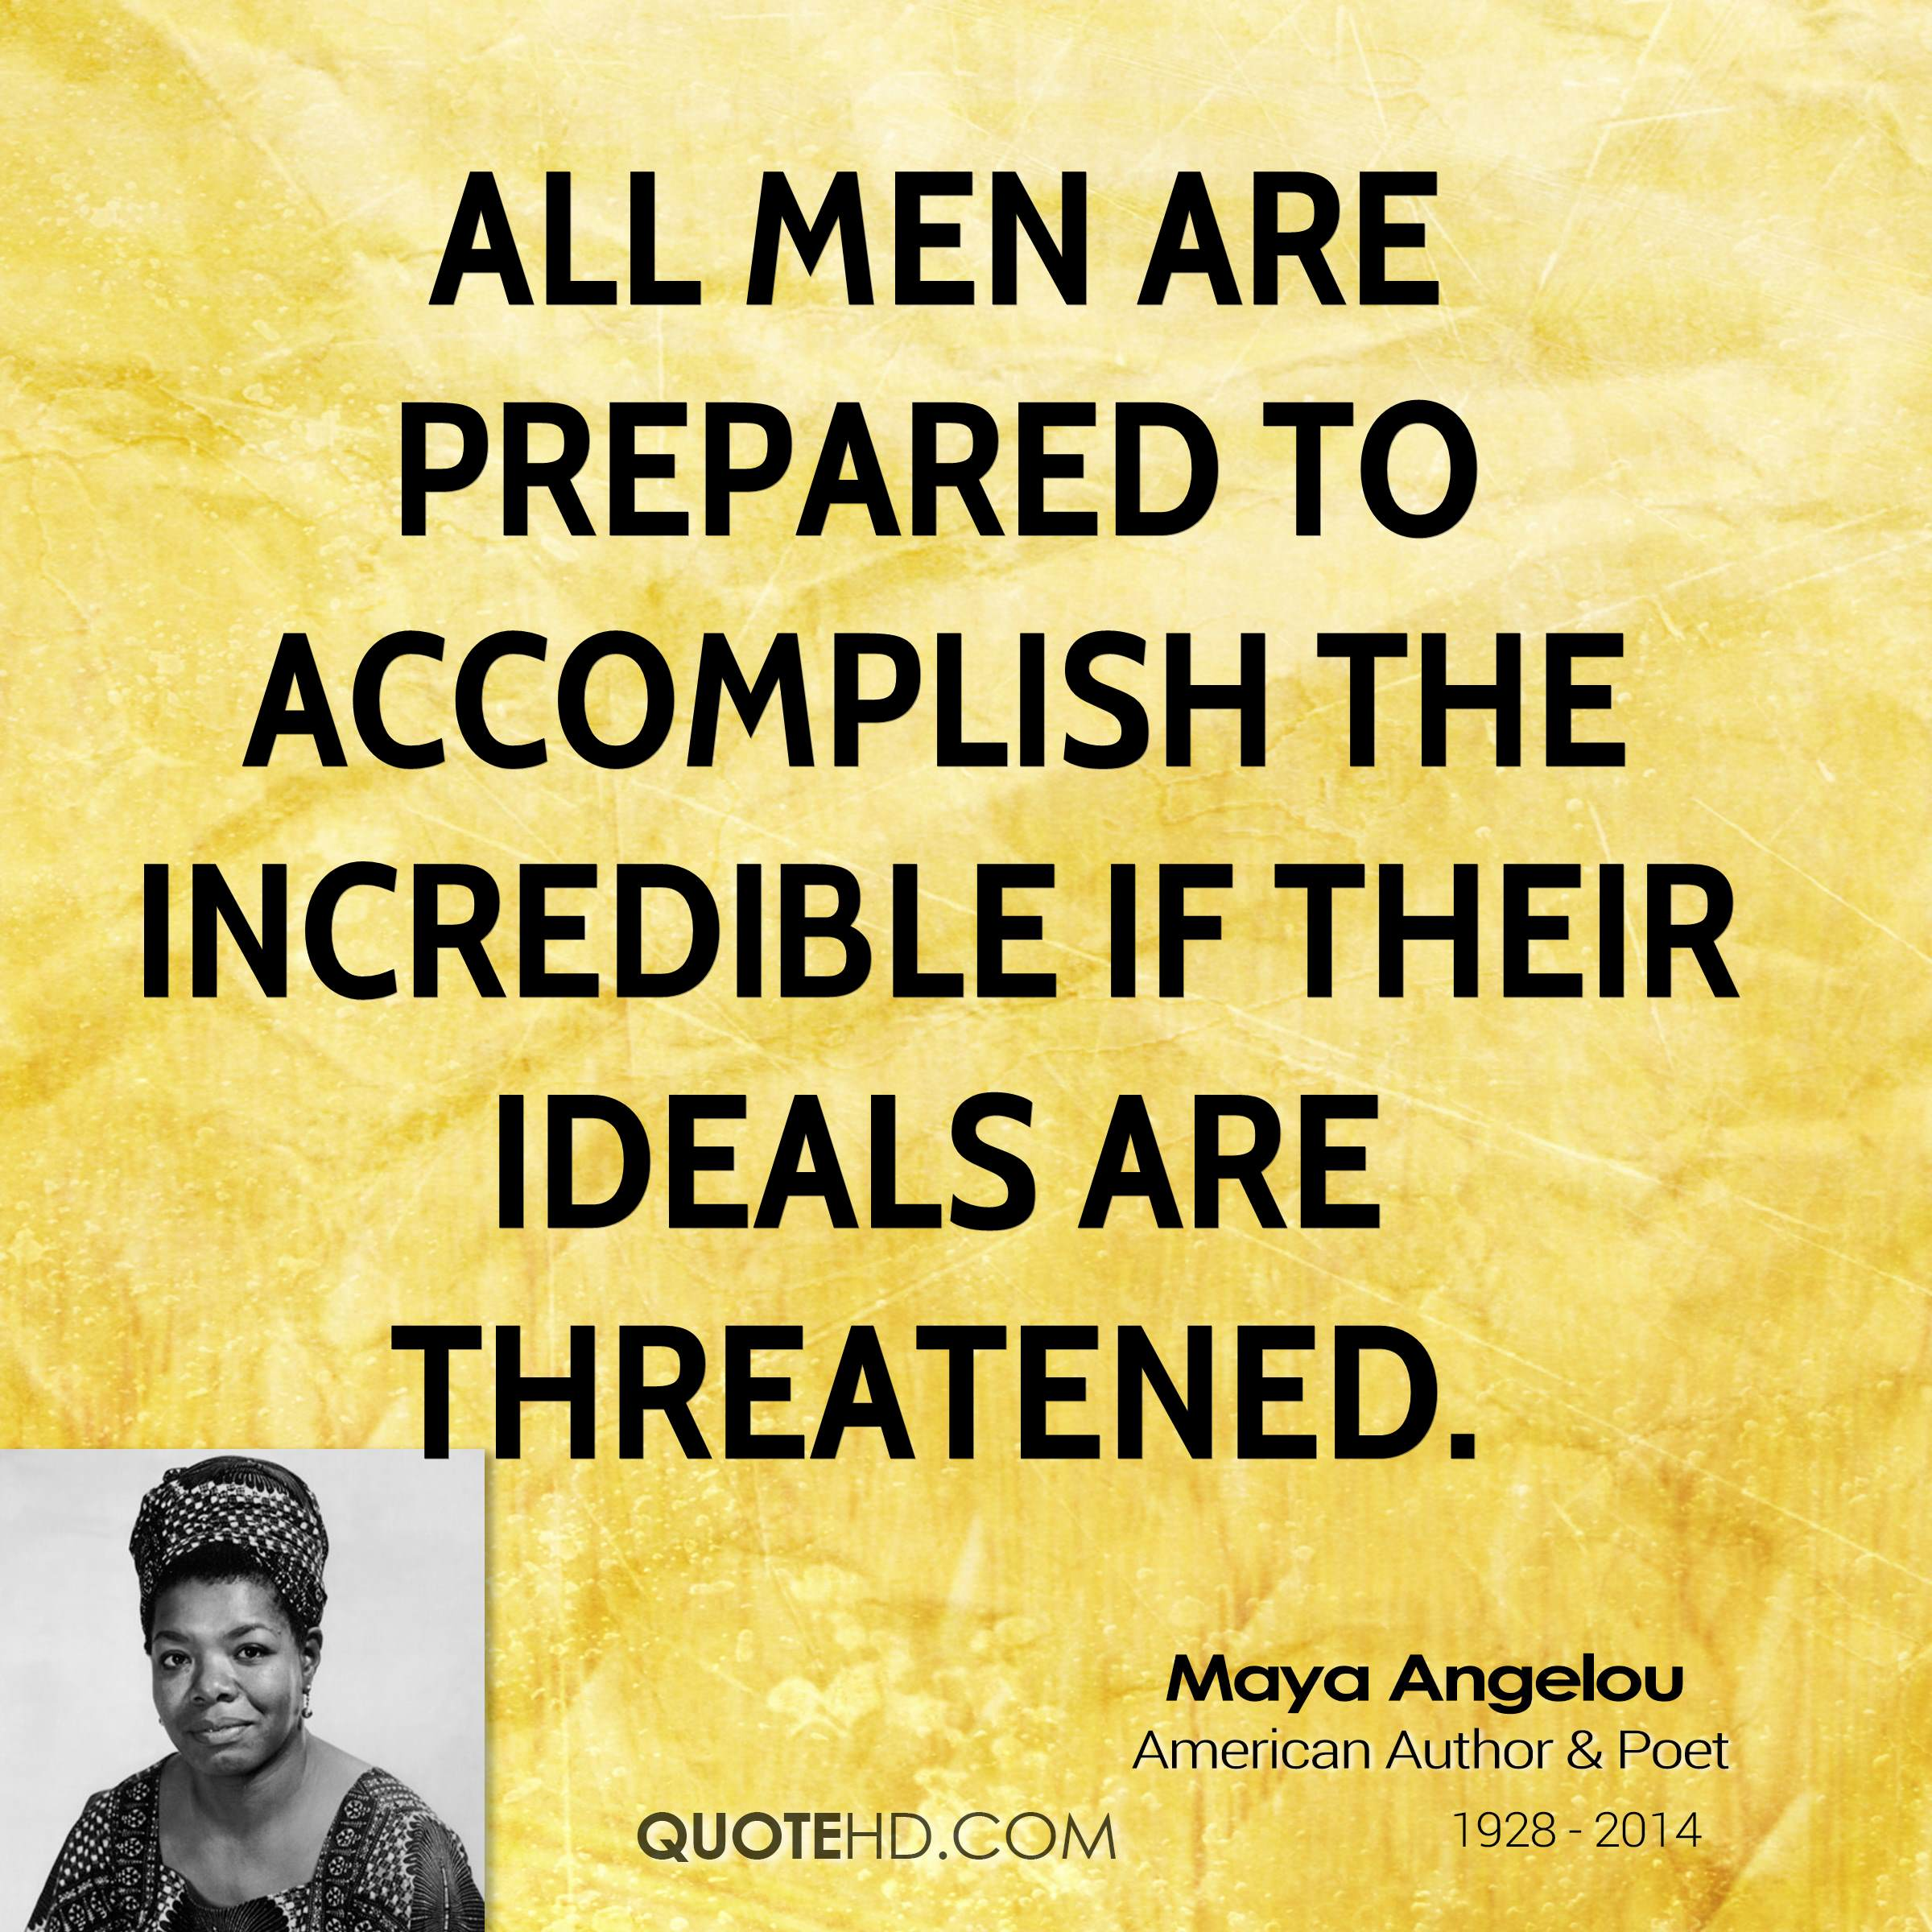 men women and feminism in maya angelous men The right not to be owned by the man you marry  i believe feminism is  grounded in supporting the choices of women even if we wouldn't make certain  choices for  the complete collected poems of maya angelou.